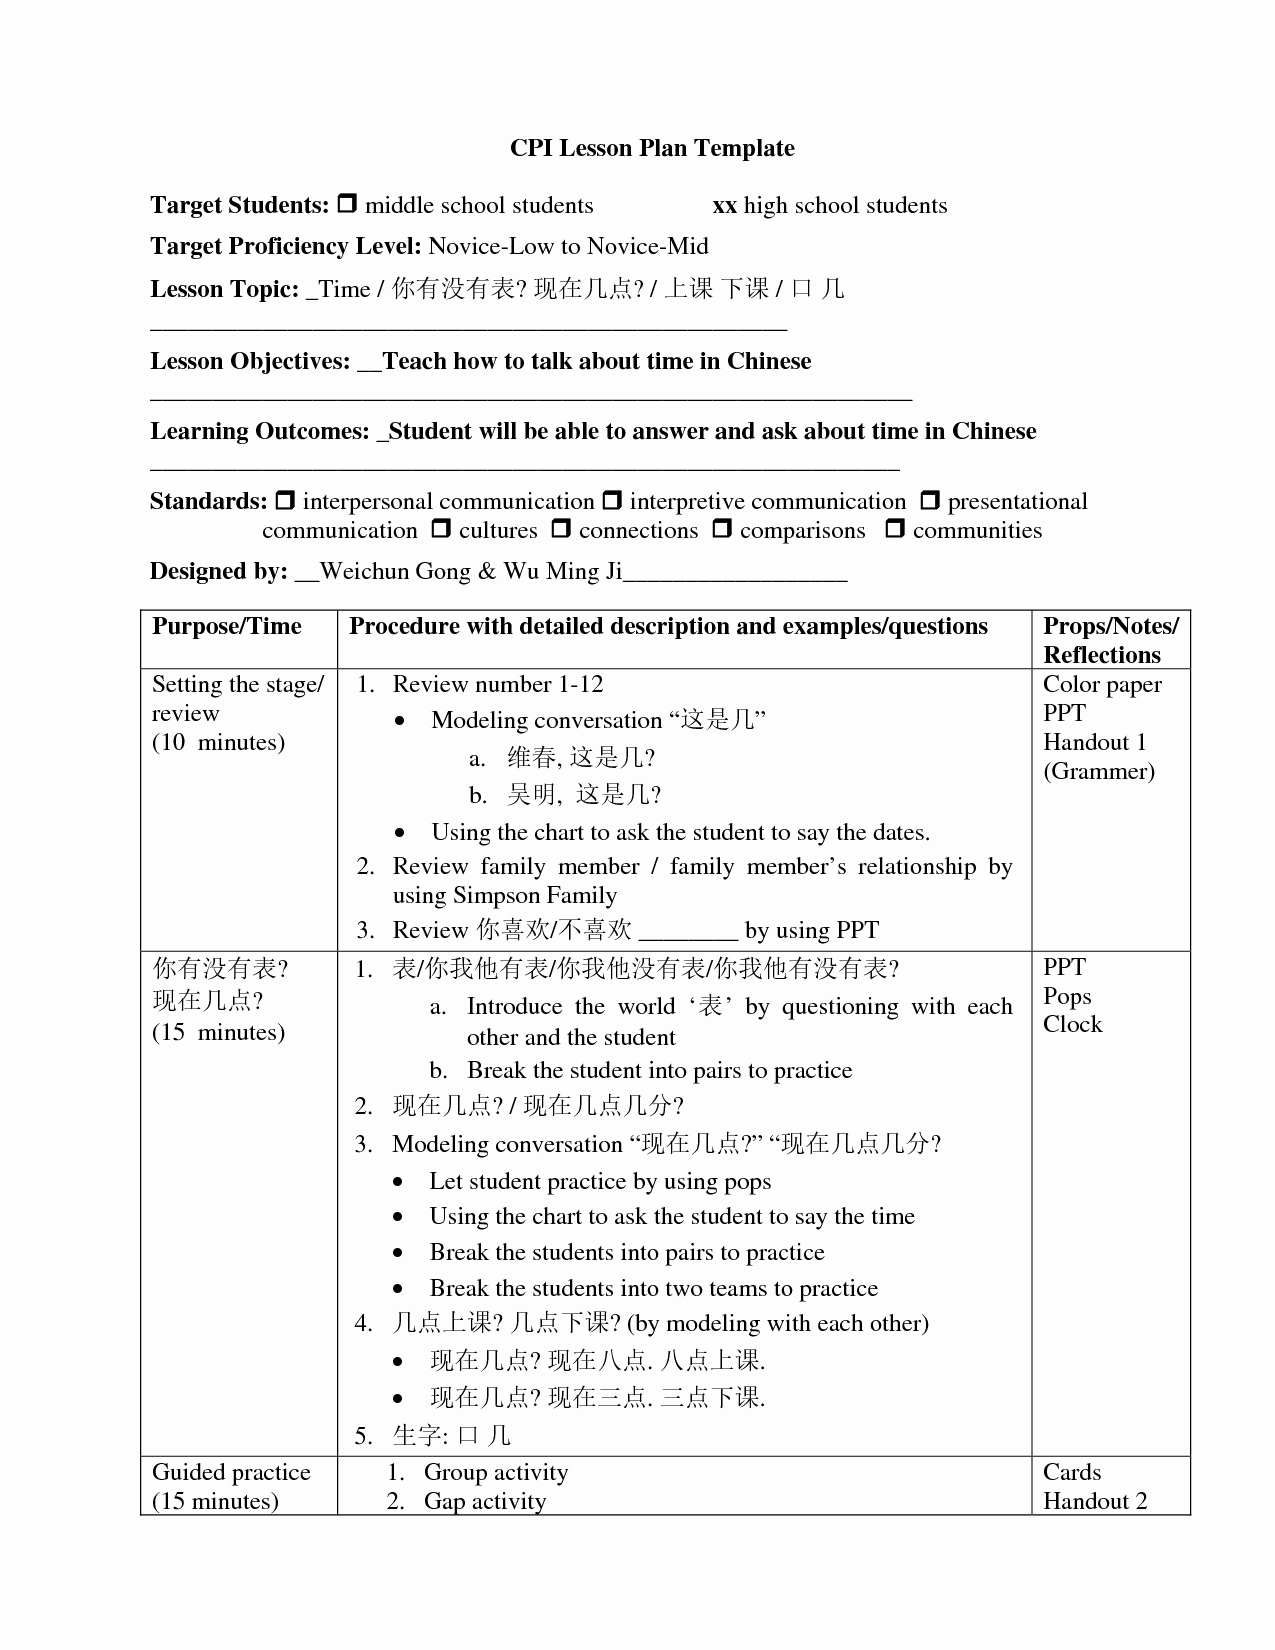 Middle School Lesson Plan Template Beautiful Cpi Lesson Plan Template Tar Students Middle School